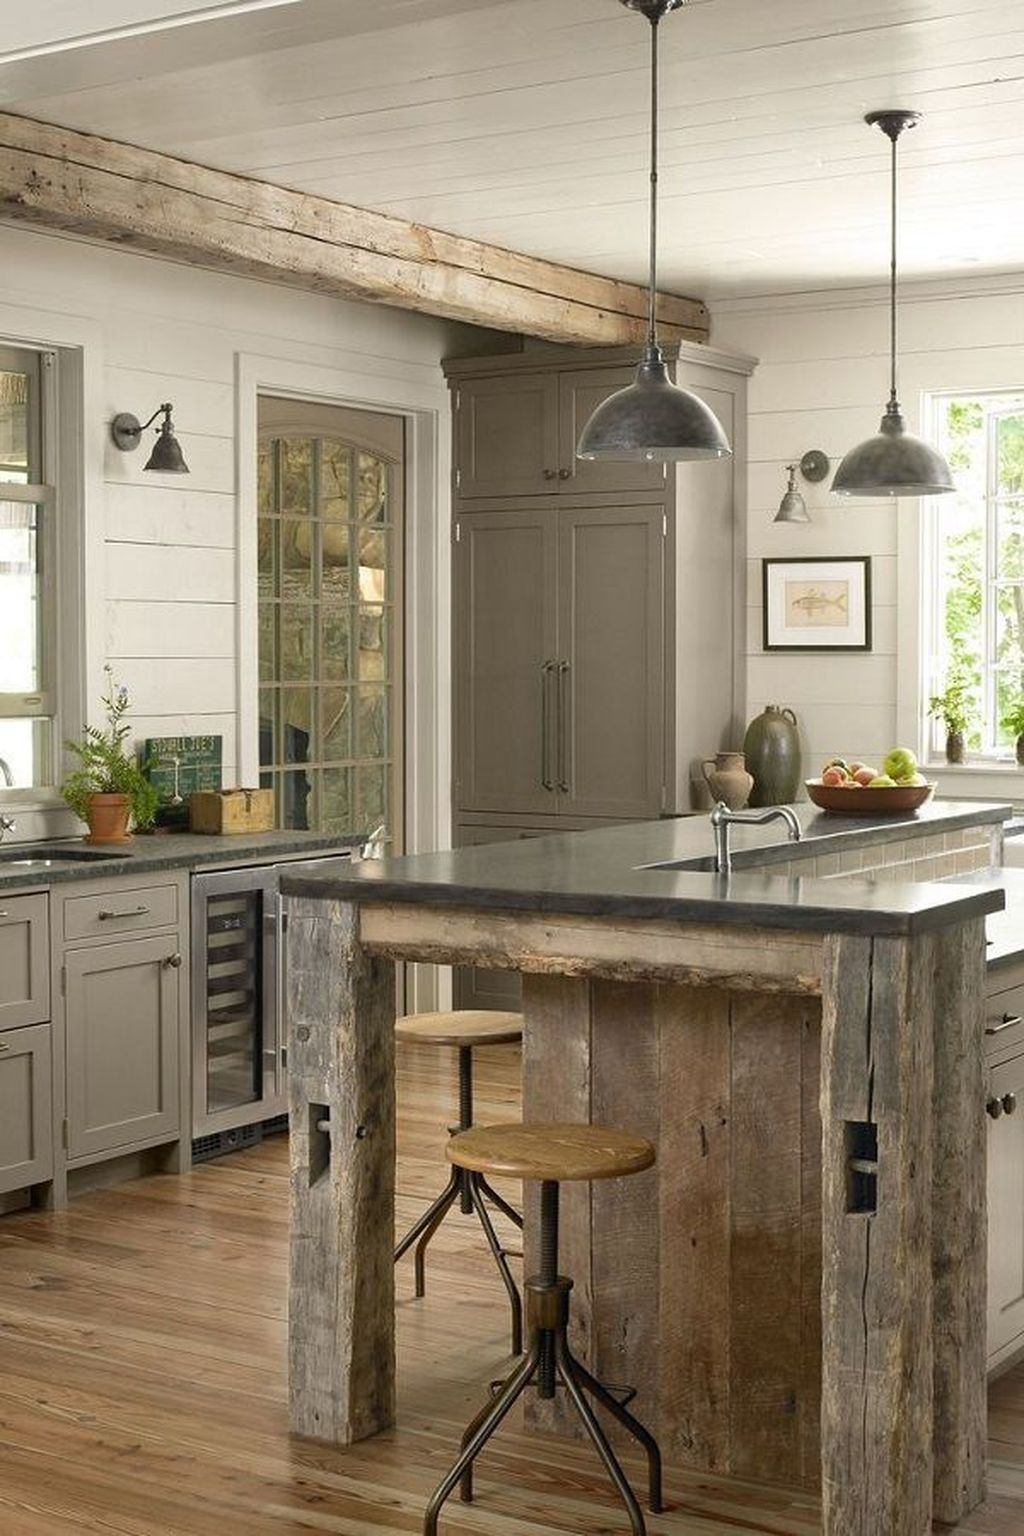 Awesome Rustic Kitchen Island Design Ideas 14